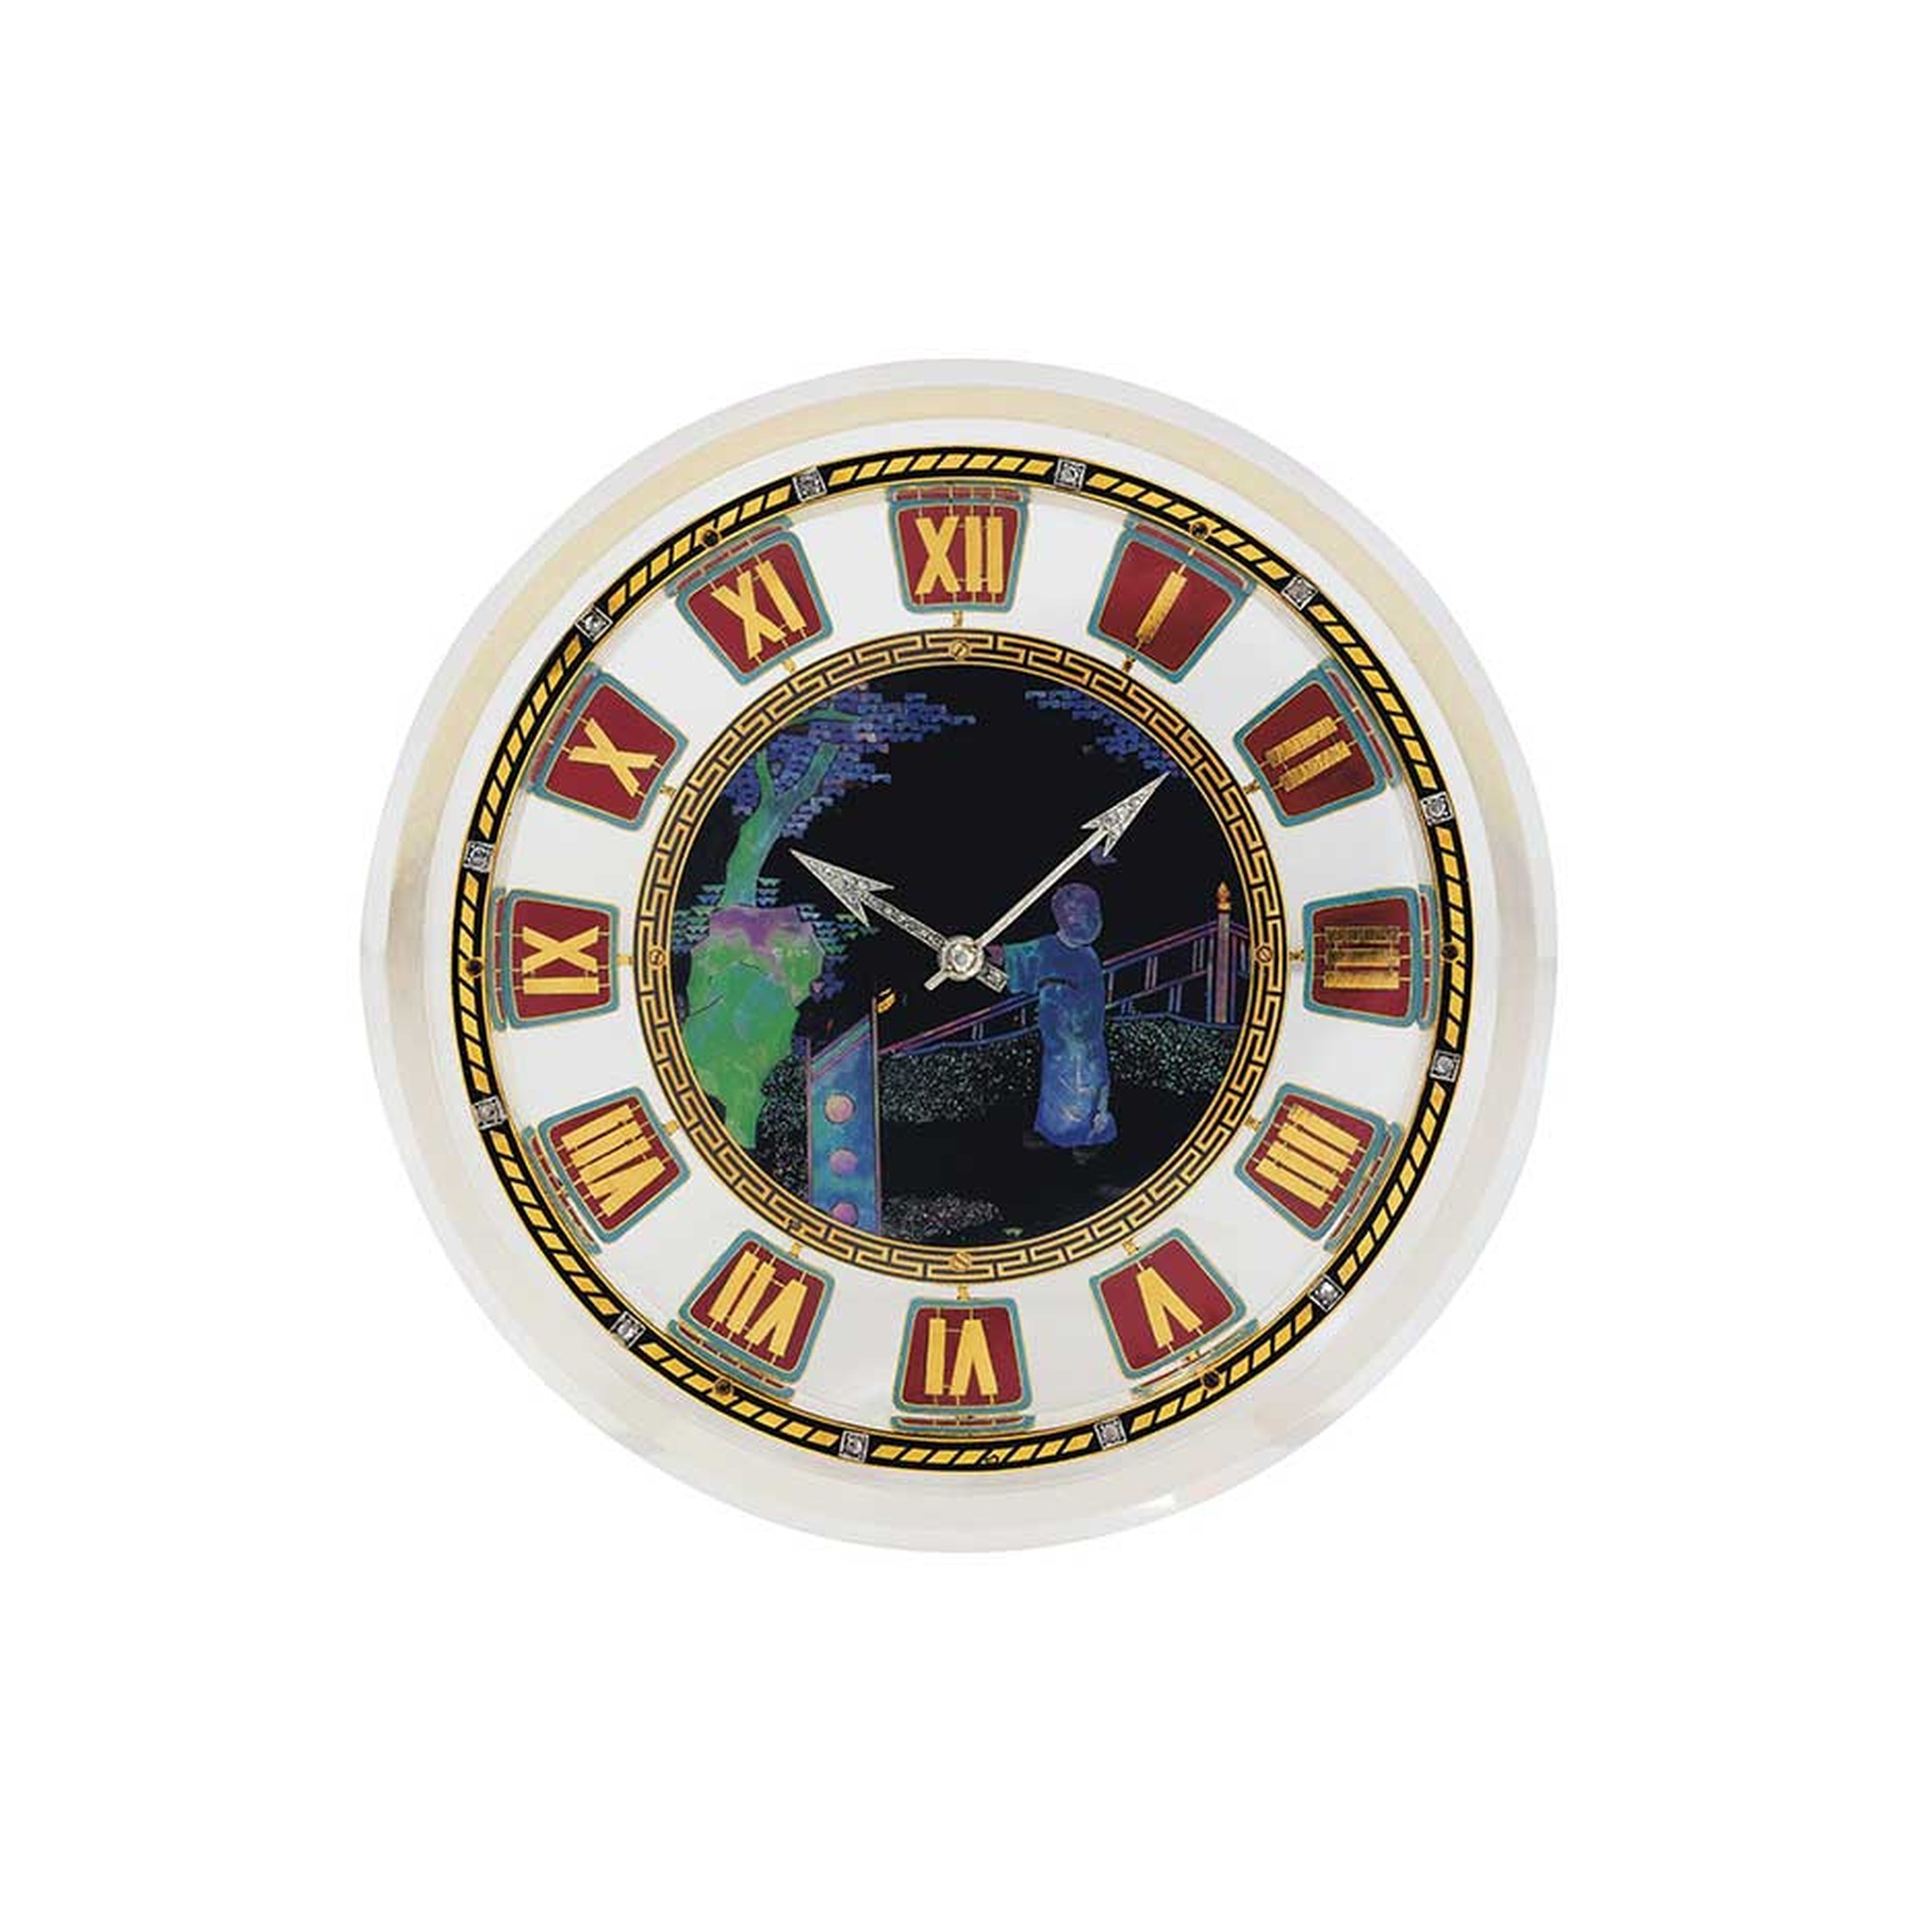 Lot 239 is a stylish Cartier clock dating from circa 1925 crafted from rock crystal, enamel, mother-of-pearl and diamonds (estimate: £40,000-60,000). Christie's Important Jewels Sale on 26 November at King Street in London.